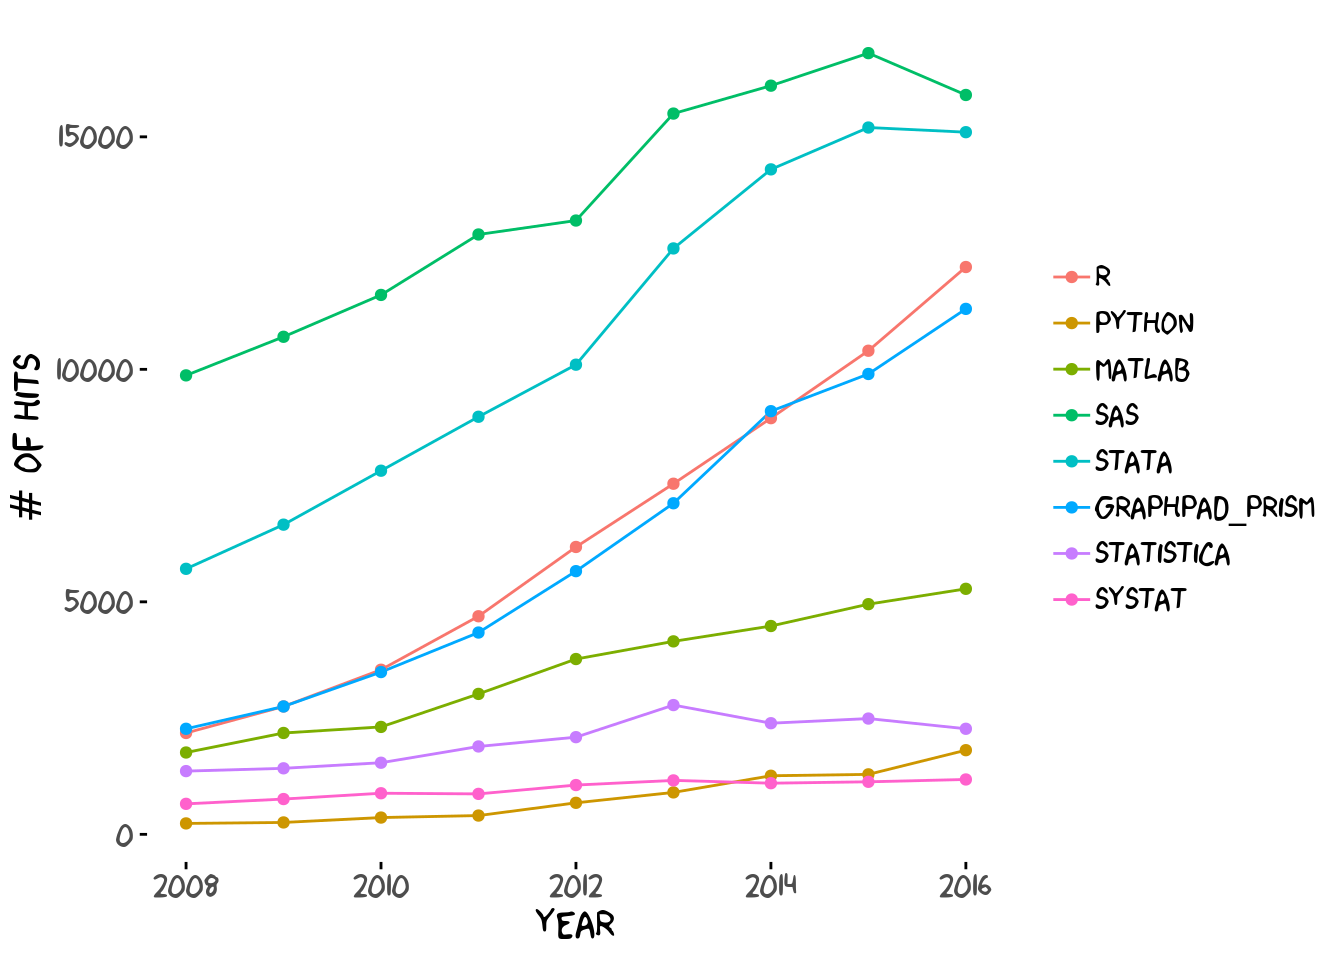 Number of epidemiology scholarly articles by year, after removing SPSS